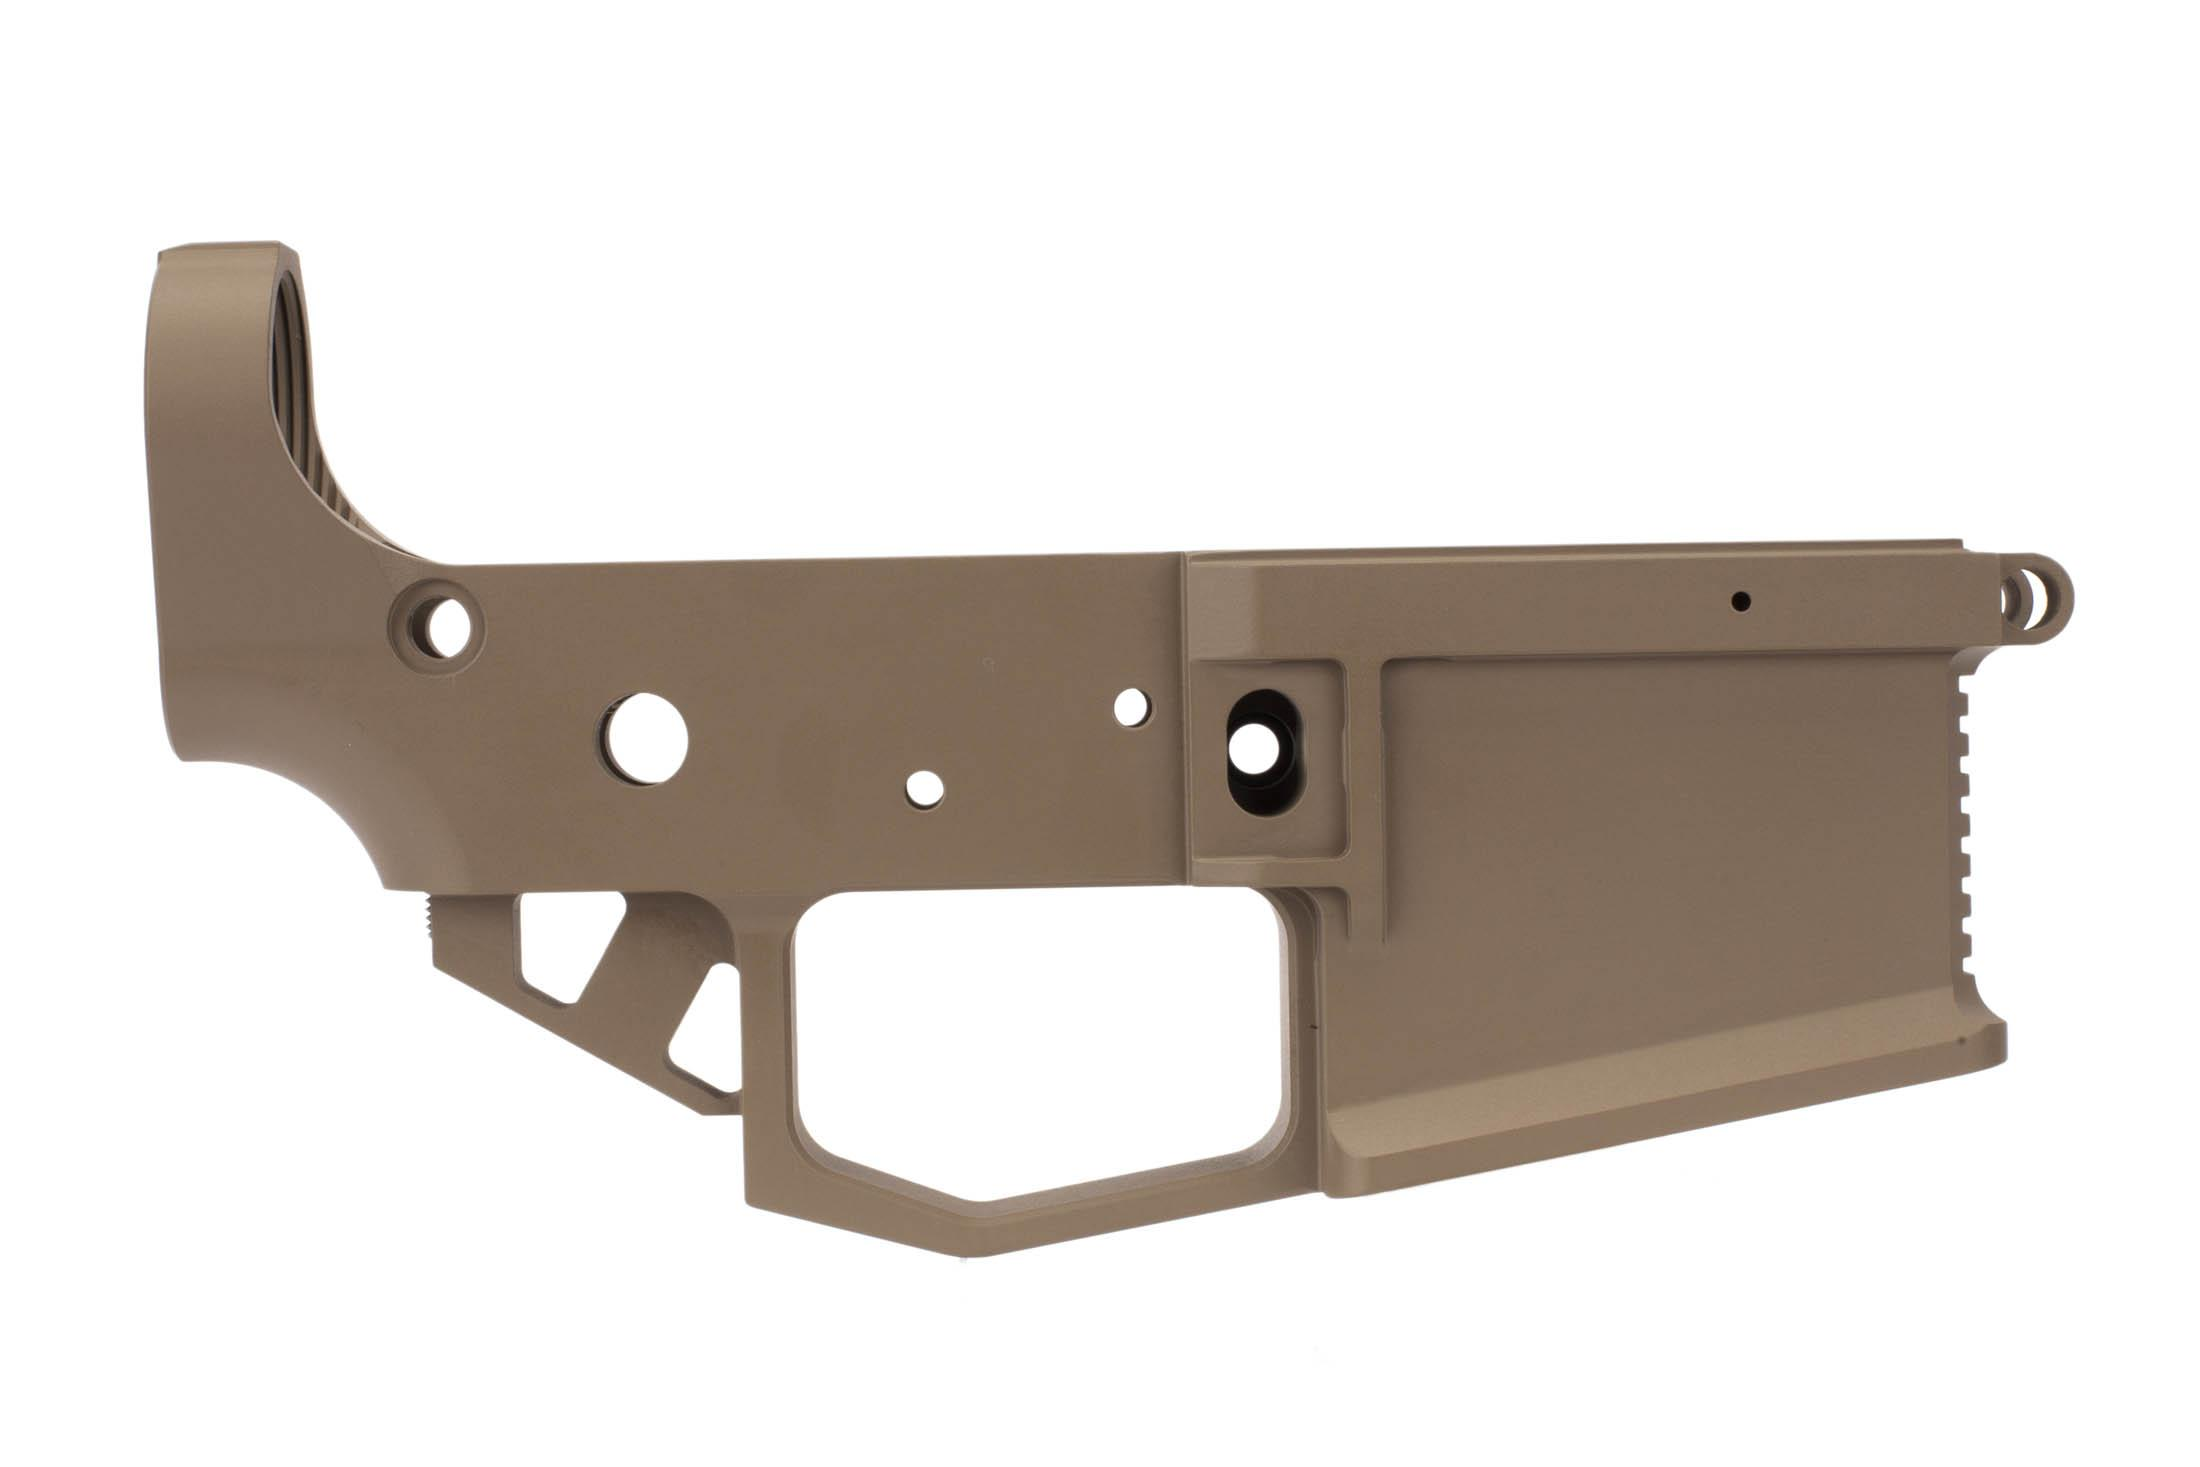 Rise Armament STRIKER billet AR-15 lower receiver in Flat Dark Earth has an integral extended trigger guard